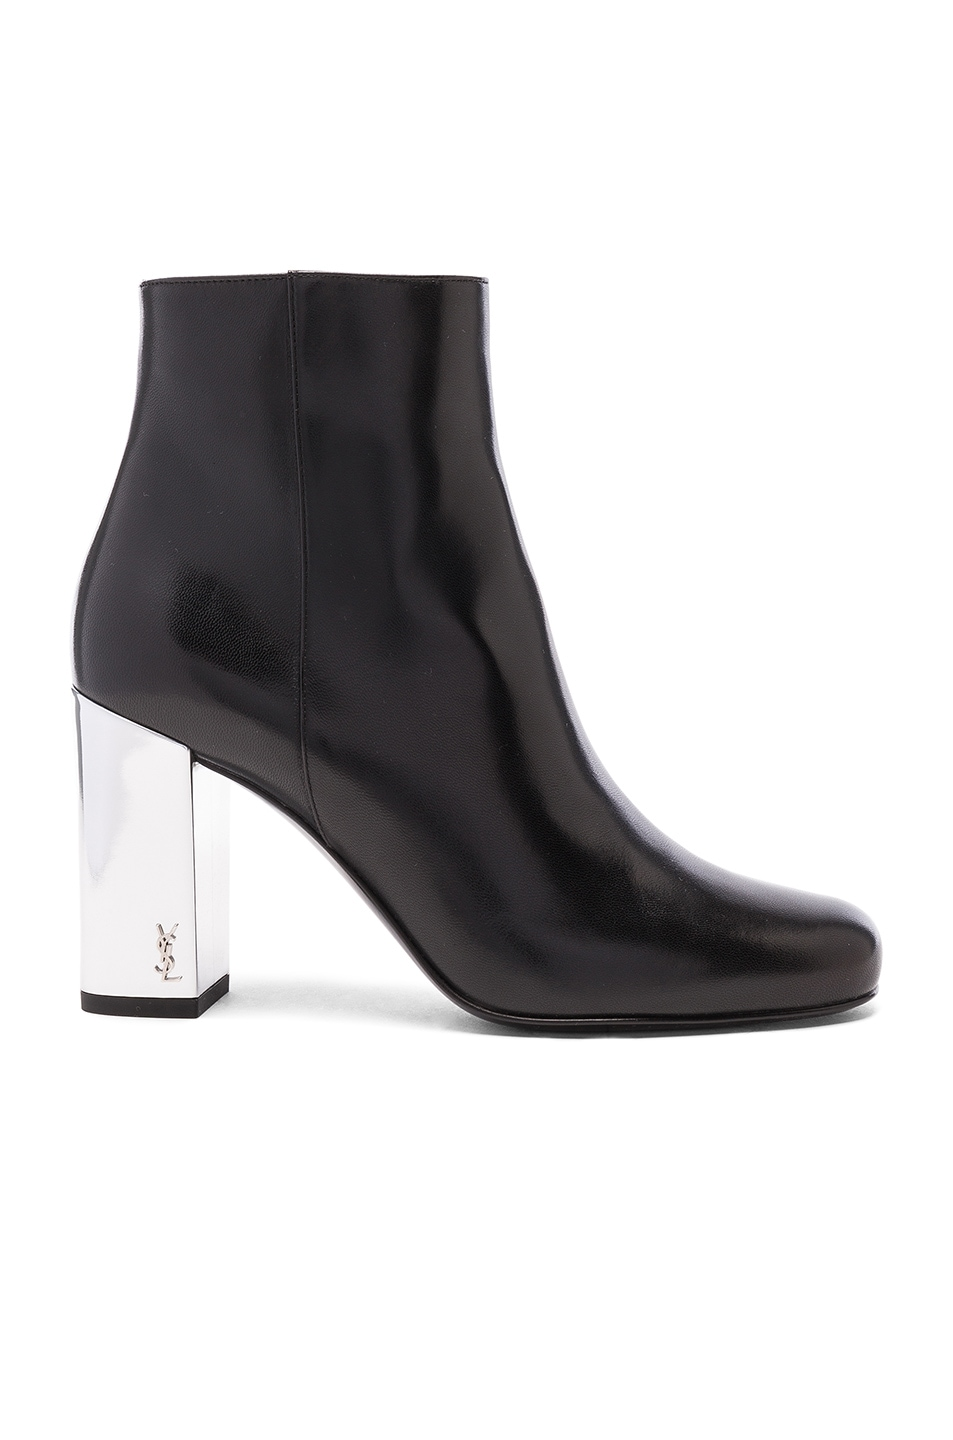 Image 1 of Saint Laurent Leather Babies Pin Boots in Black & Silver